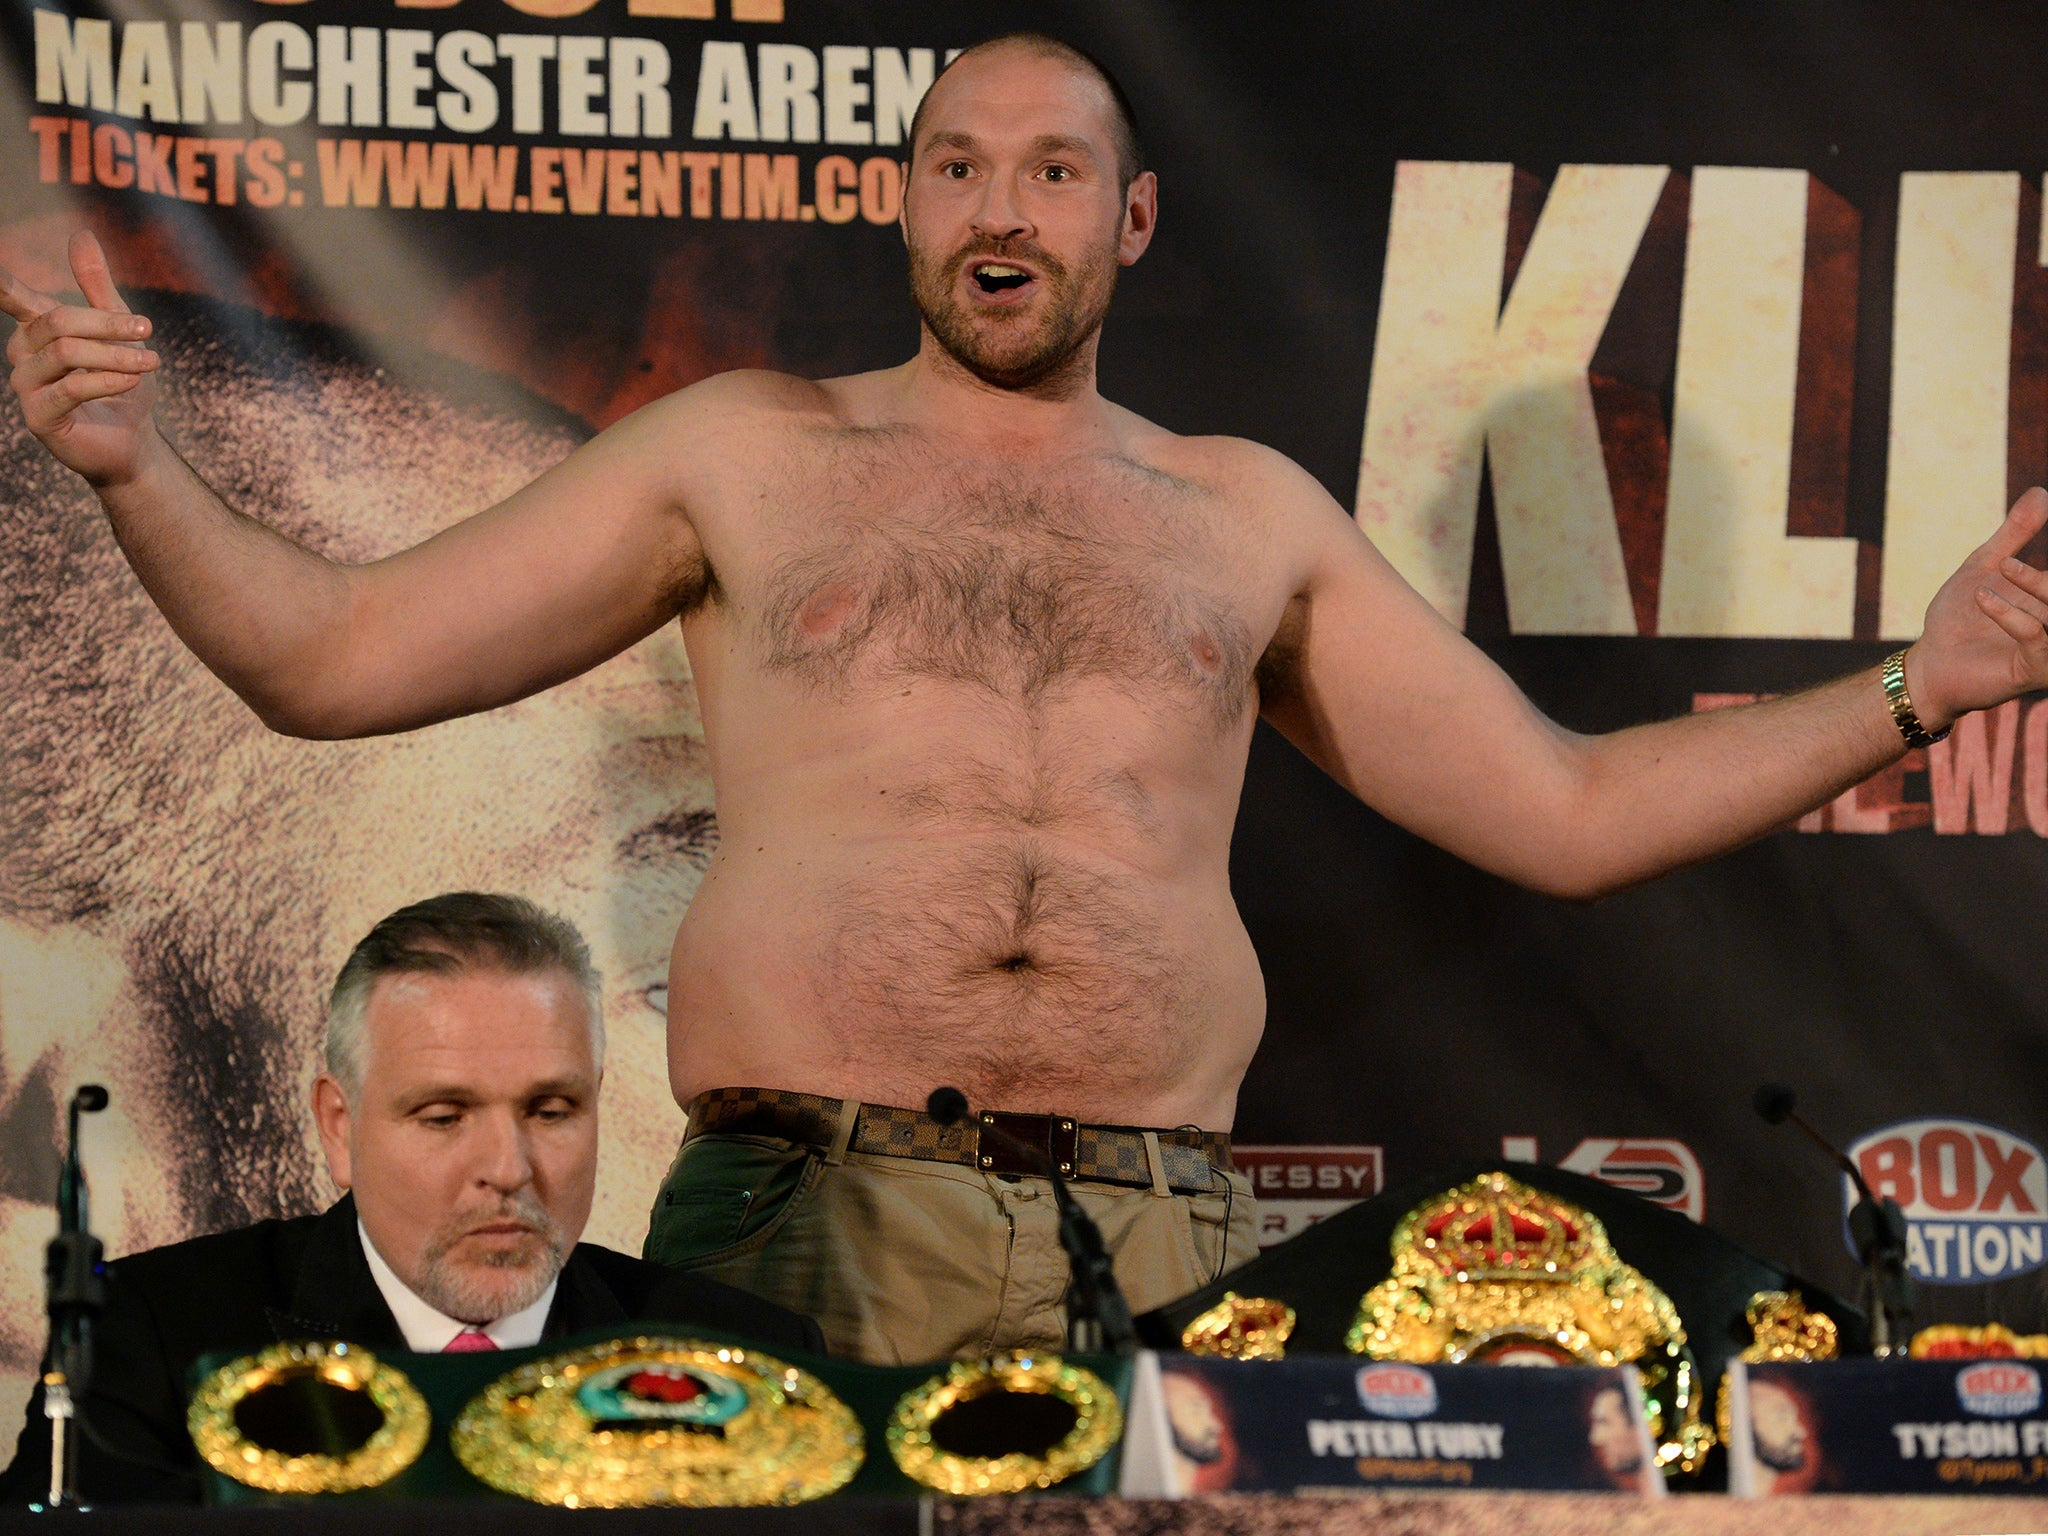 Discussion on this topic: The Diet That Helped Tyson Fury Lose , the-diet-that-helped-tyson-fury-lose/